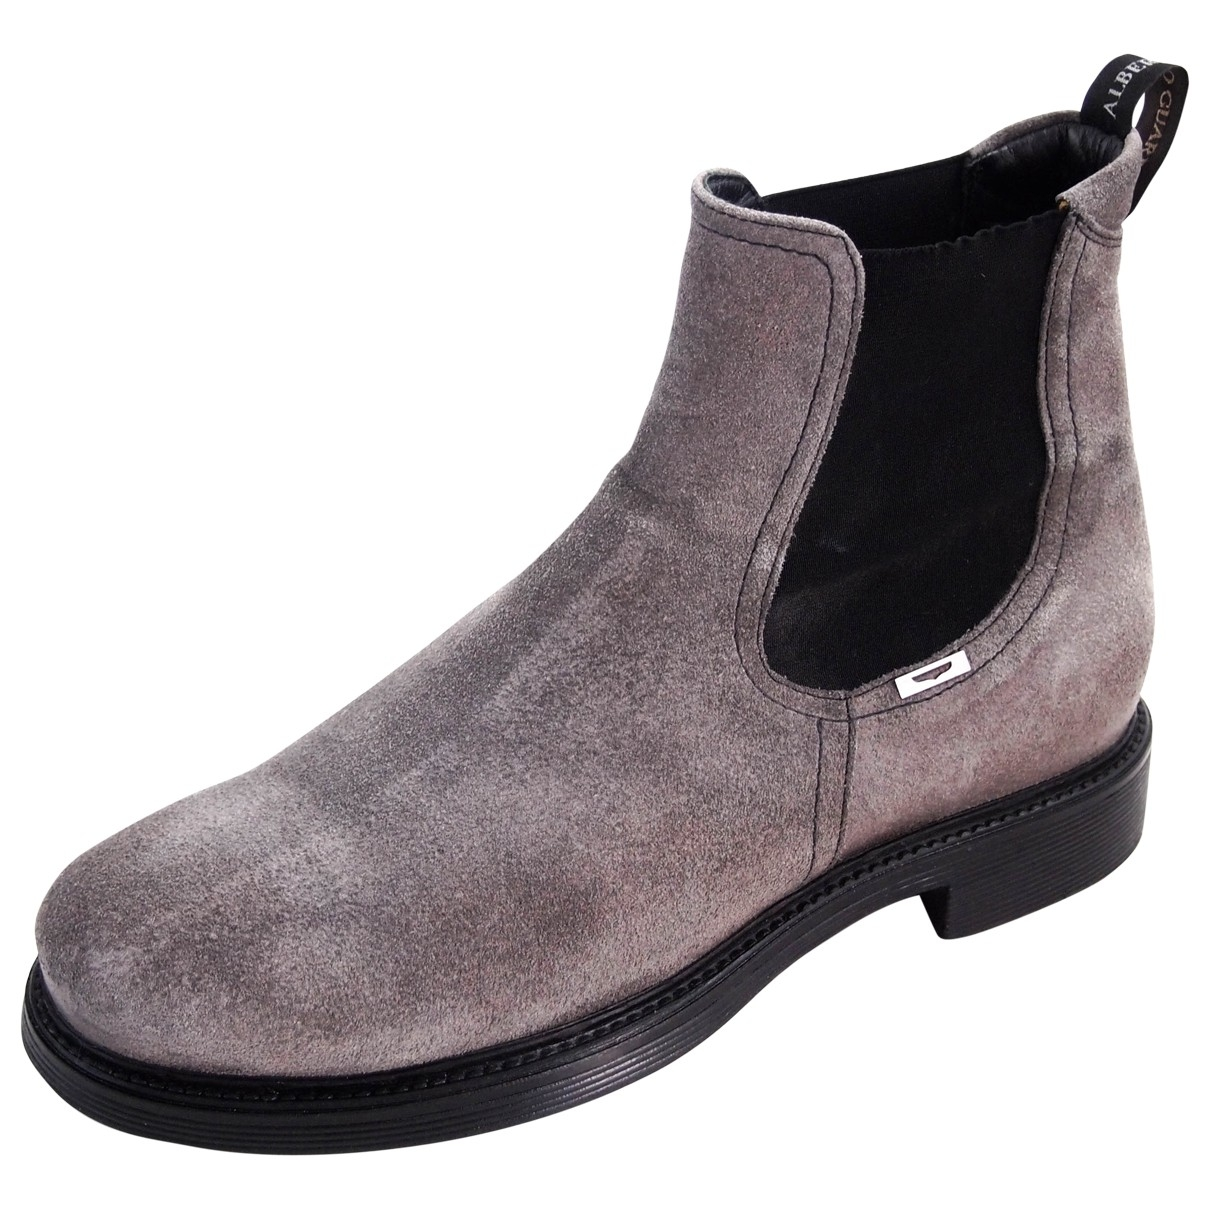 Alberto Guardiani \N Grey Suede Boots for Men 42 EU